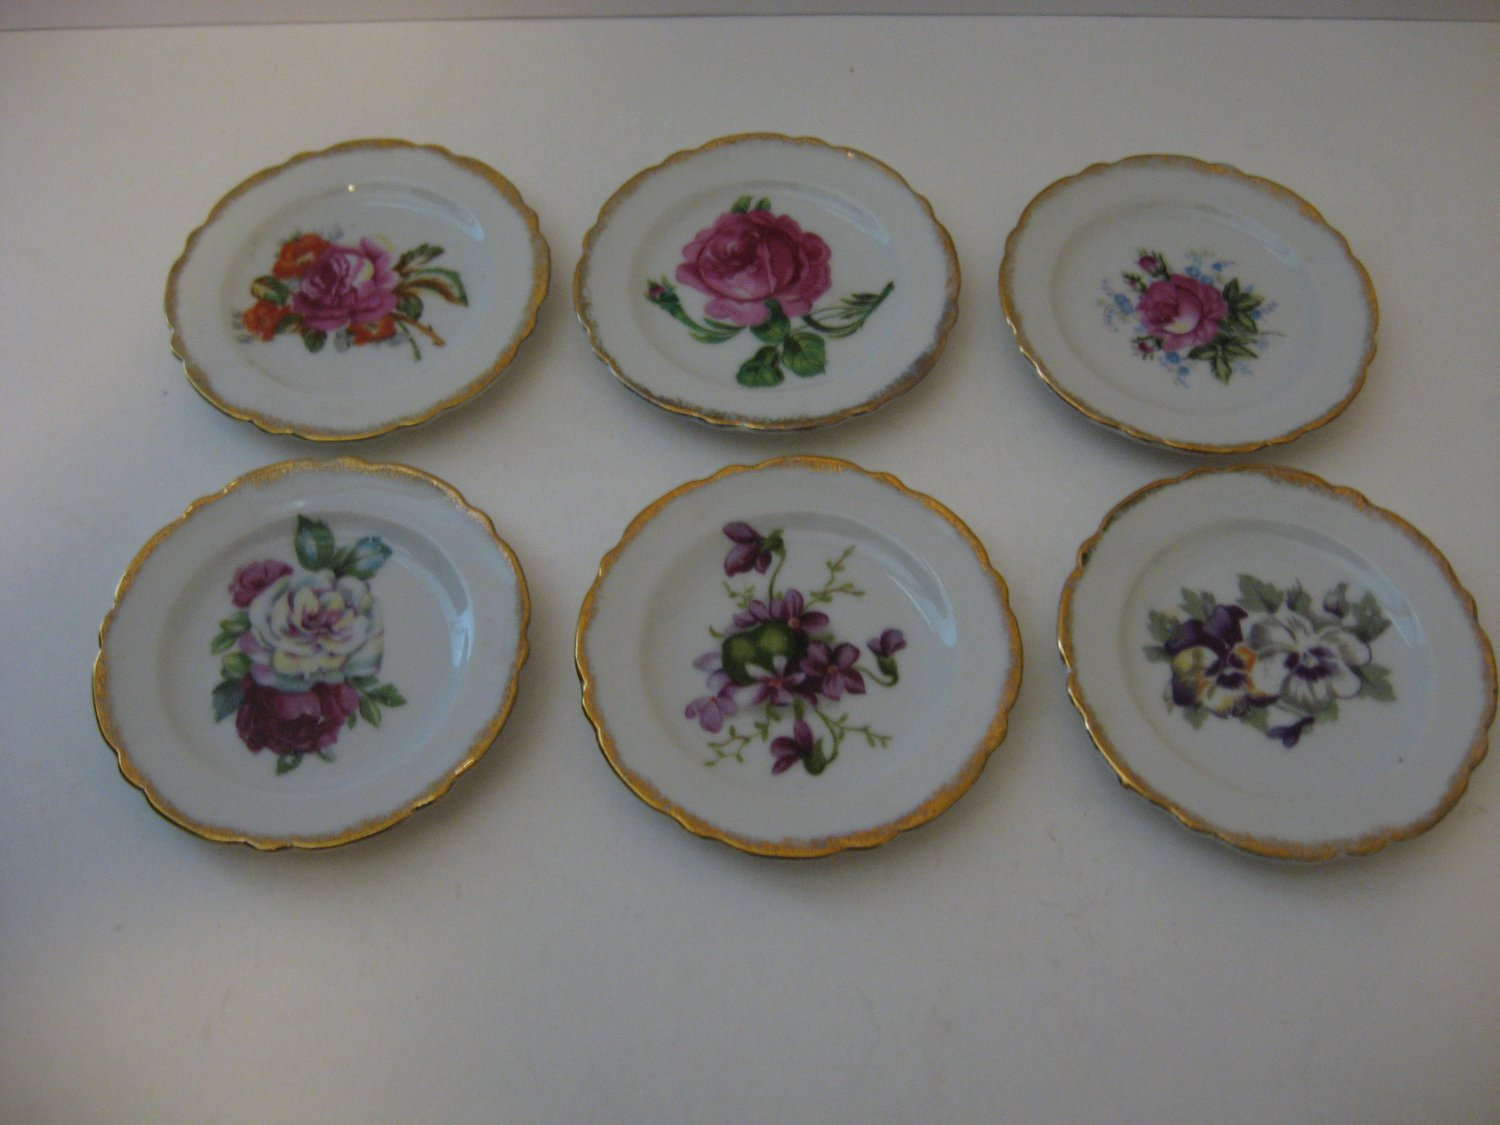 6  - Vintage Chase hand-painted flowered butter plate set - Made in Japan